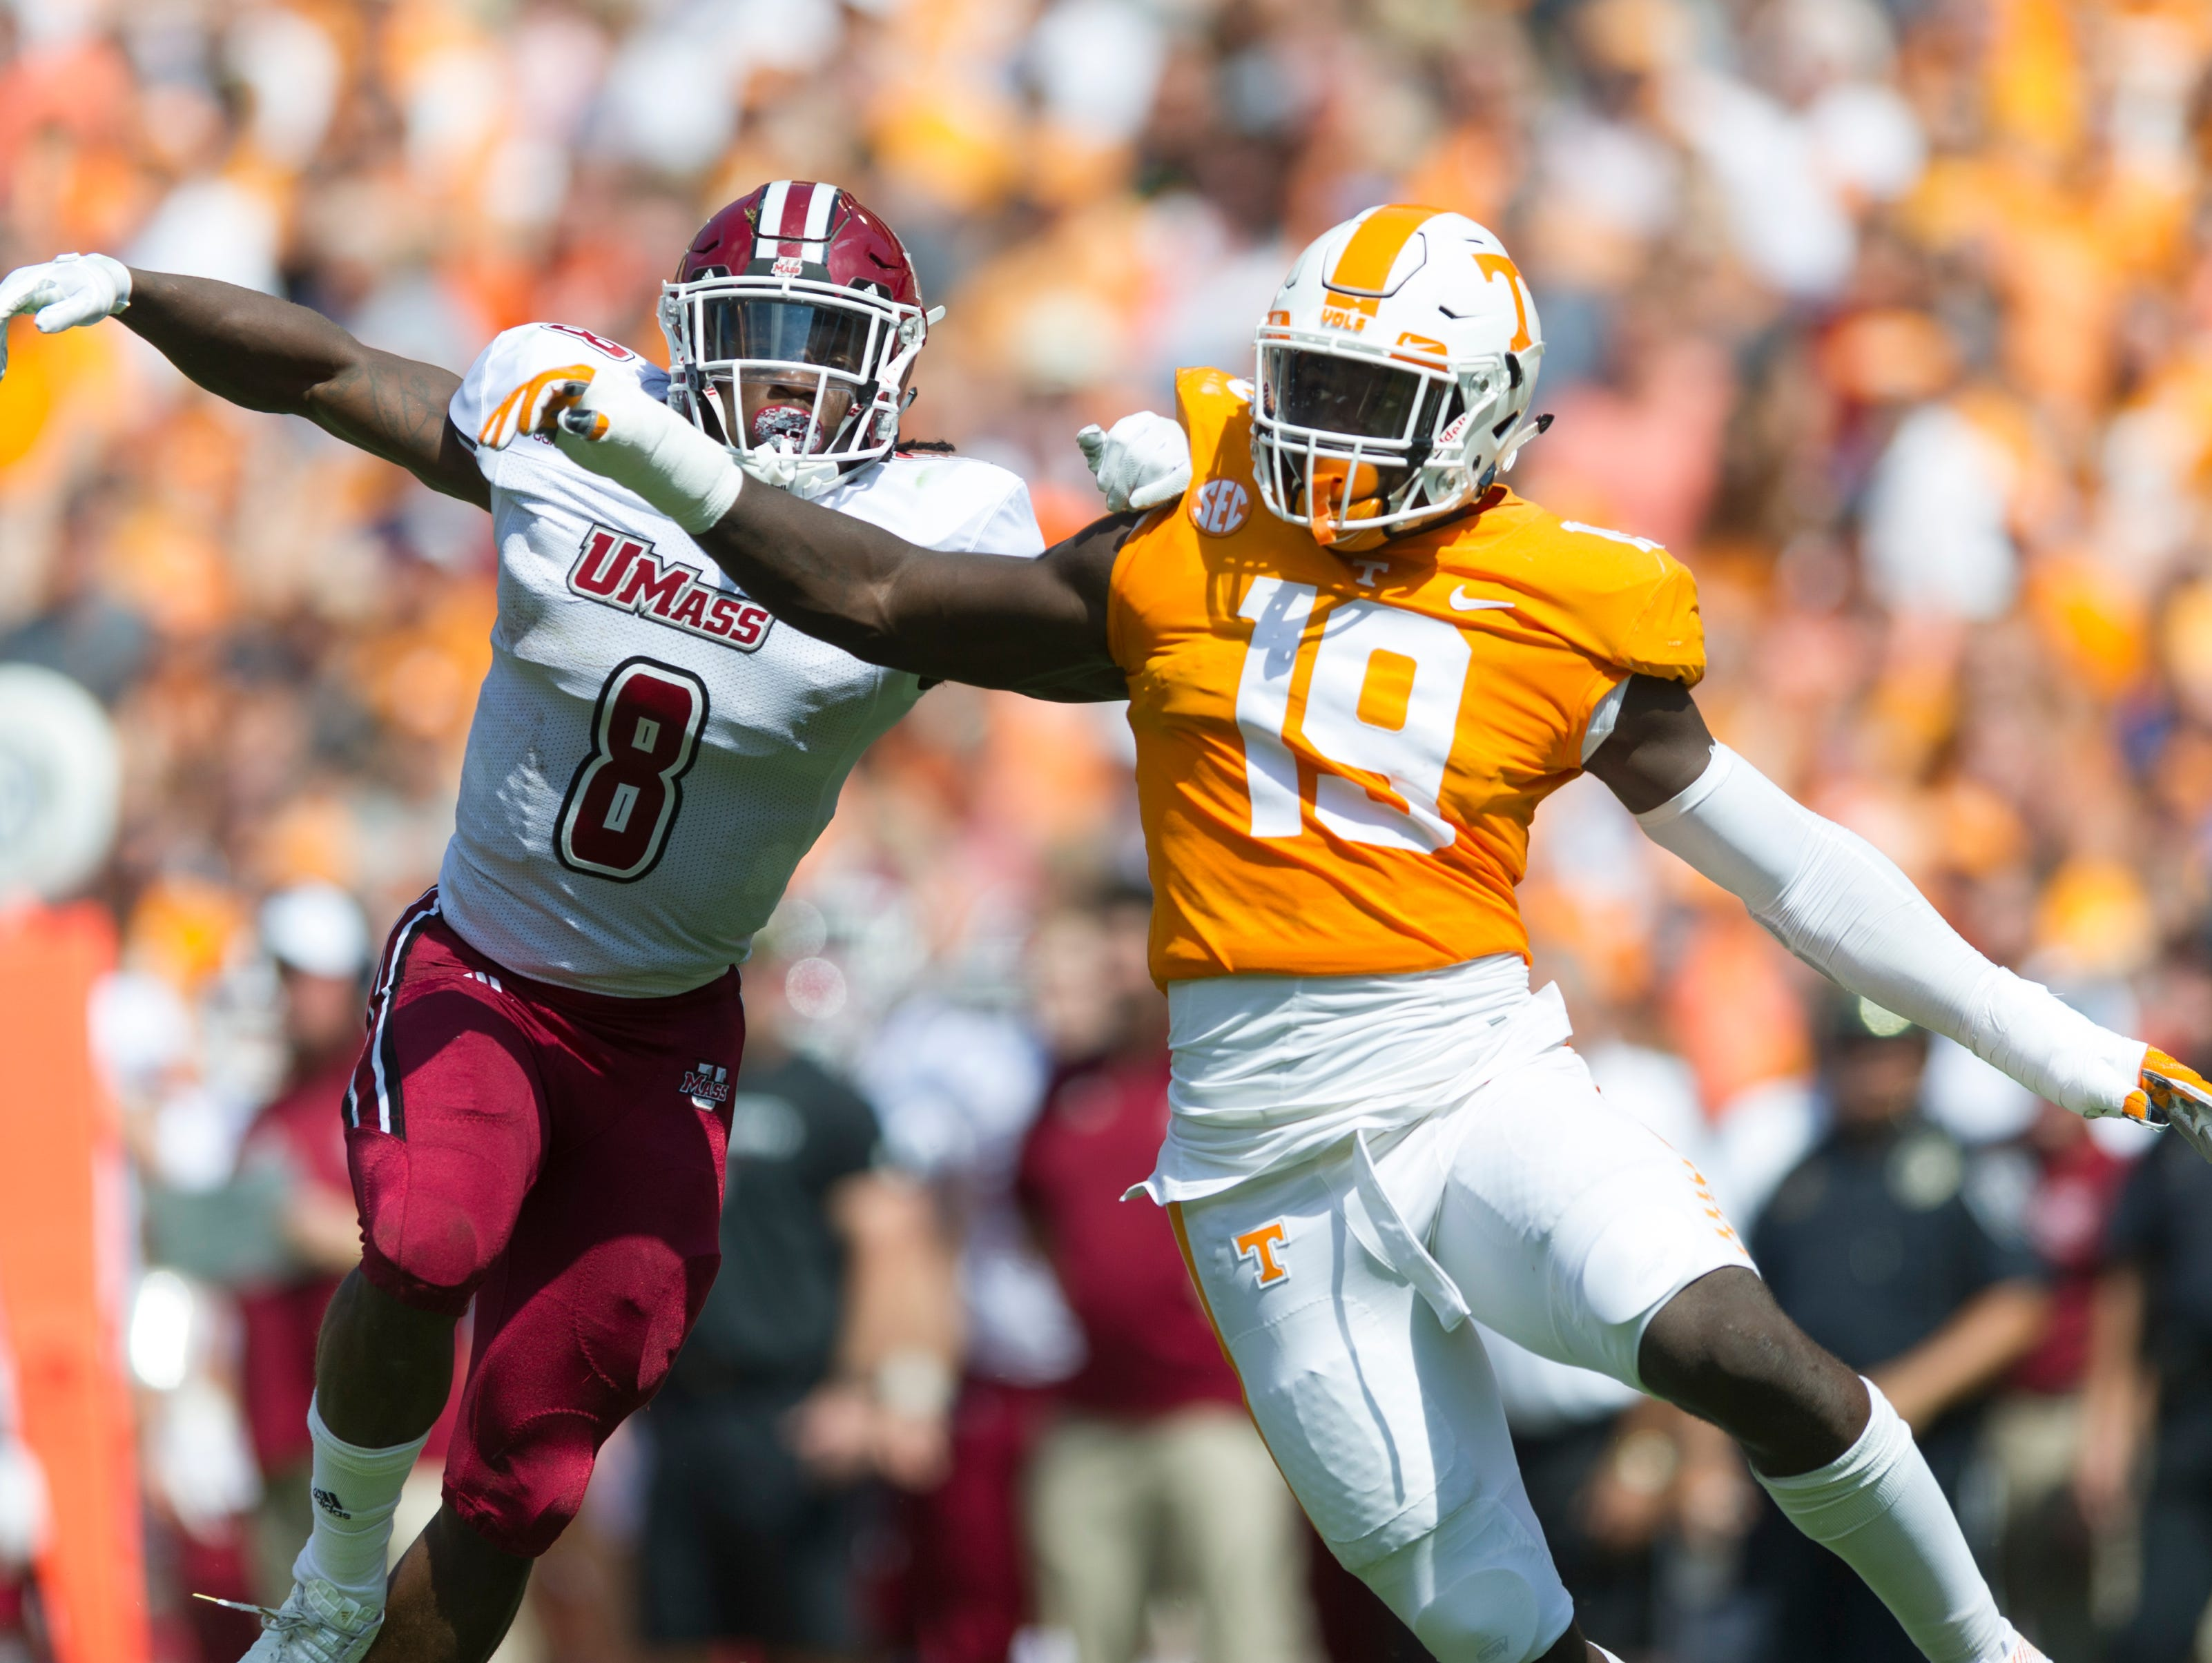 Vols defensive lineman Darrell Taylor (19) and UMass linebacker Shane Huber (8) bump against each other during the game Sept. 23, 2017.